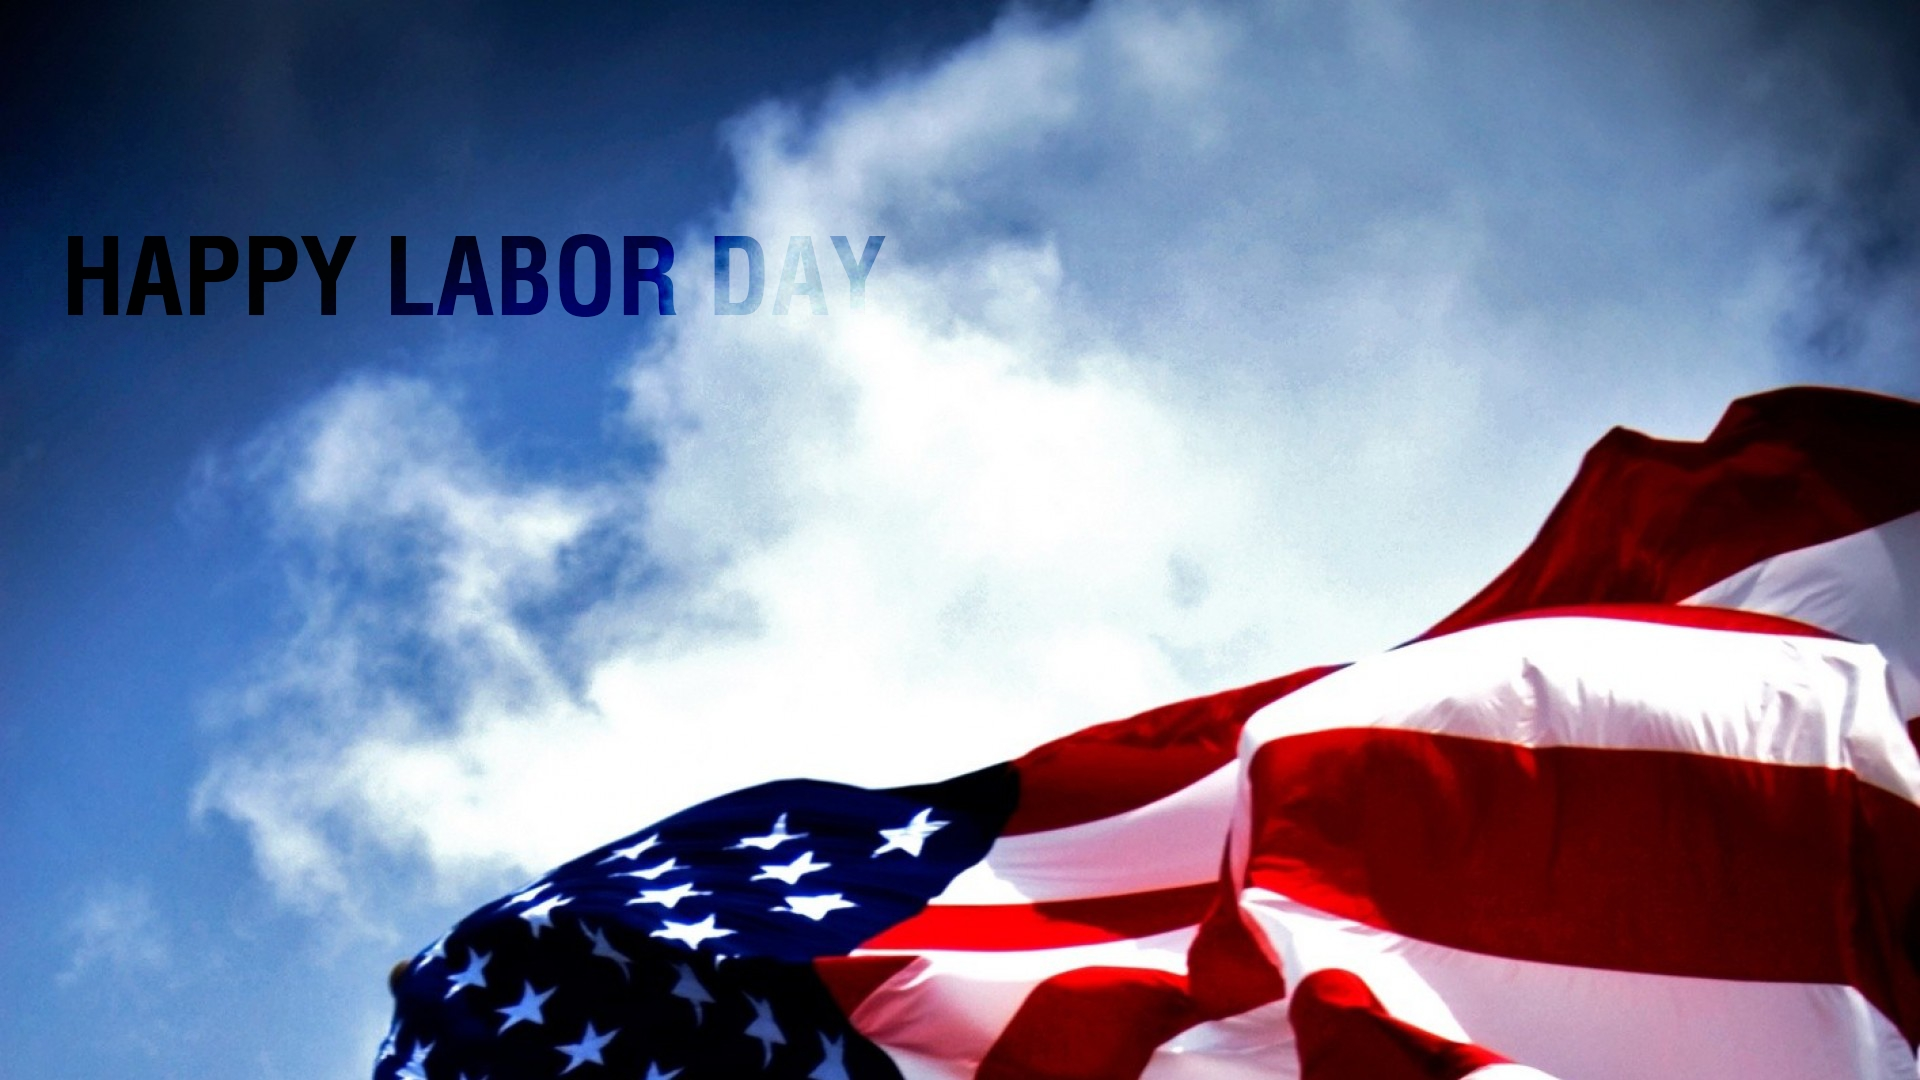 impressive 2016 wallpapers pack: labor day wallpapers, p.129